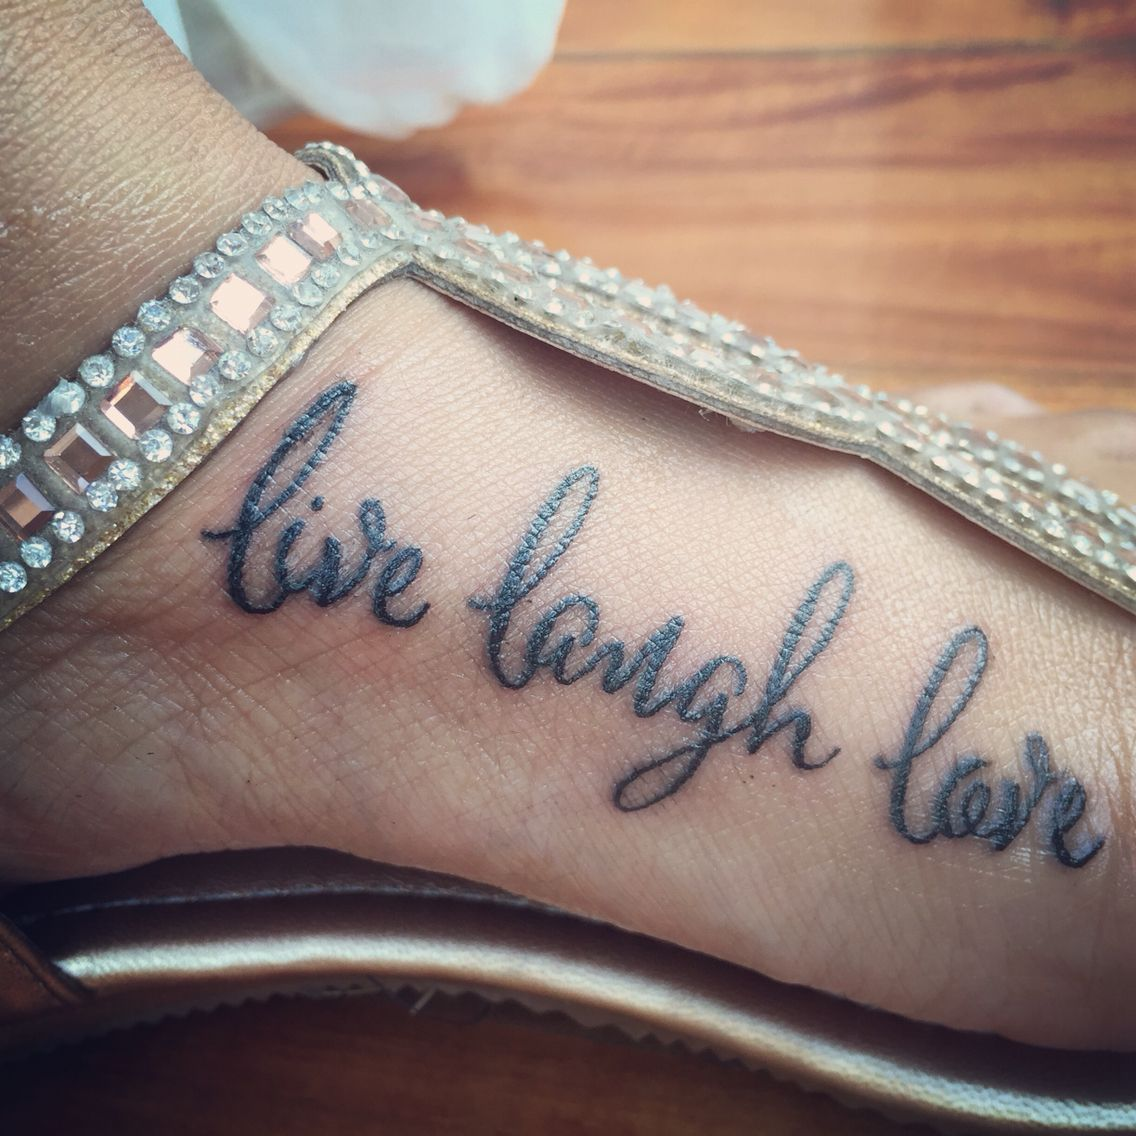 Live laugh love tattoo on the inside left foot Love